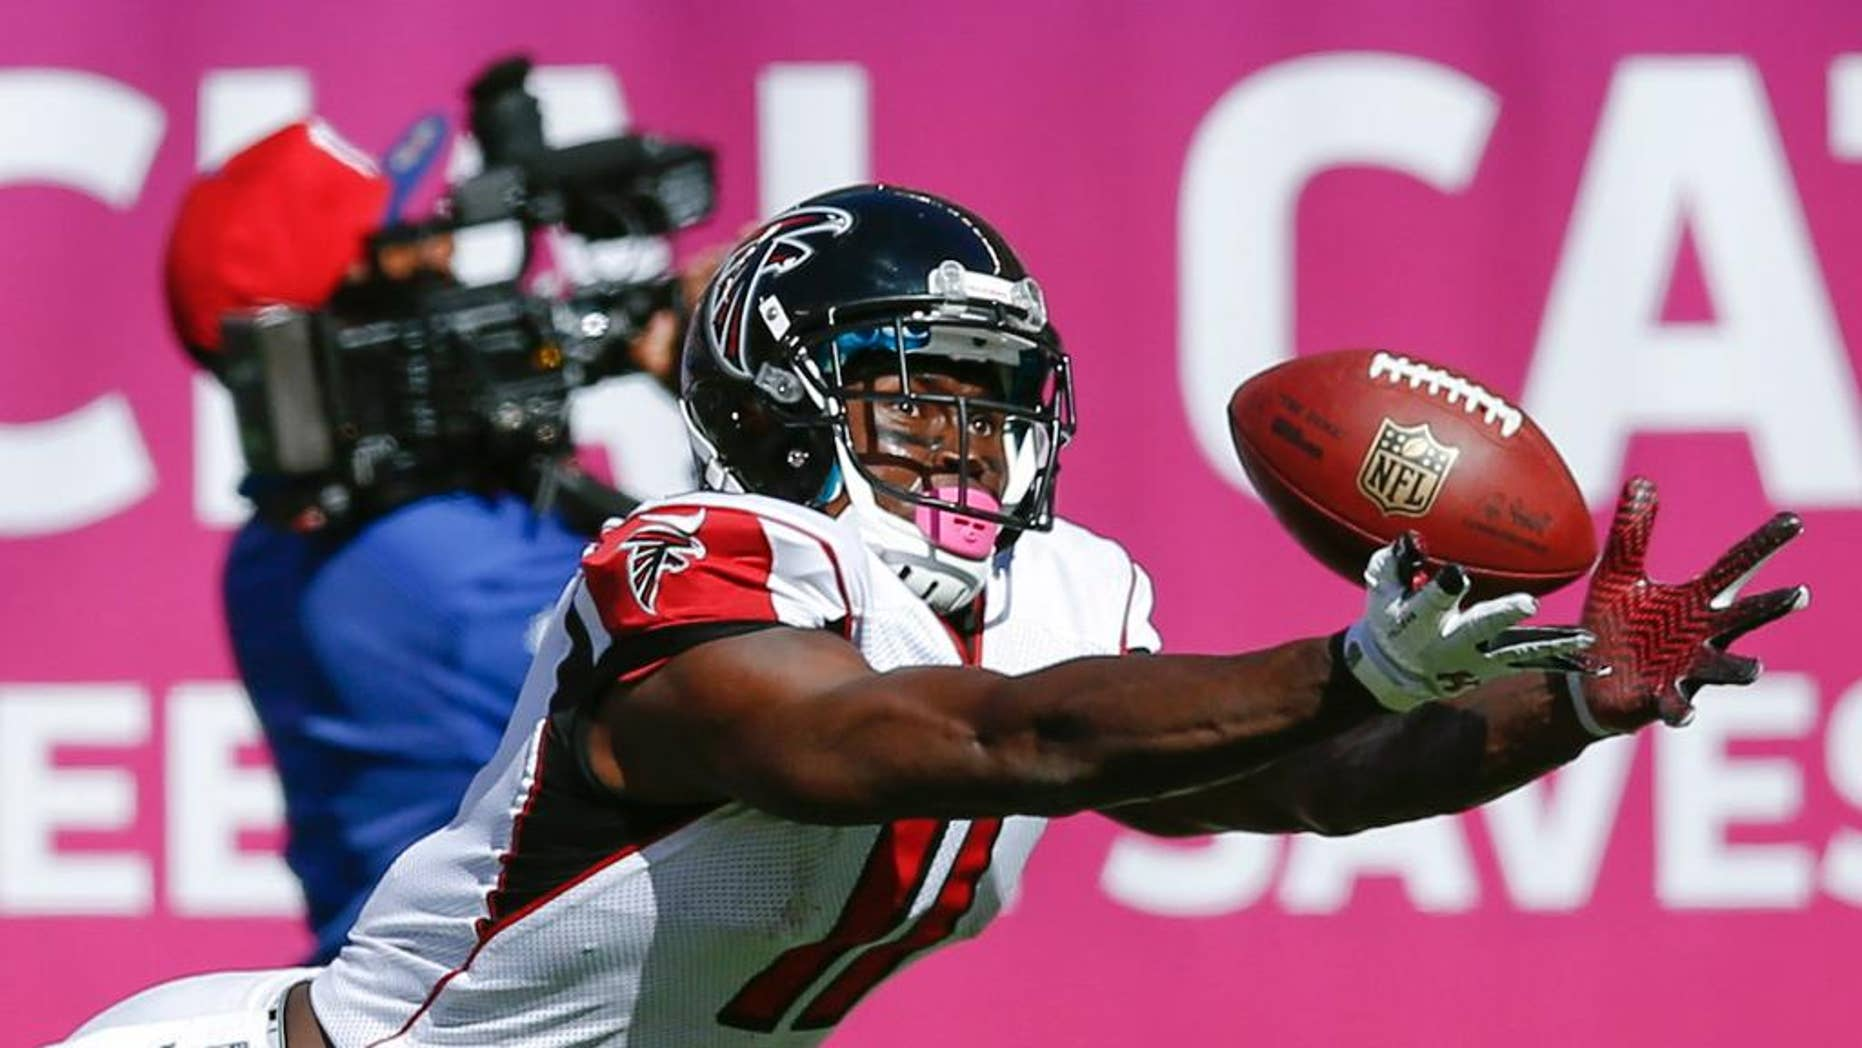 Atlanta Falcons wide receiver Julio Jones dives but is unable to catch a pass from quarterback Matt Ryan during the second half of an NFL football game against the New York Giants, Sunday, Oct. 5, 2014, in East Rutherford, N.J. (AP Photo/Kathy Willens)